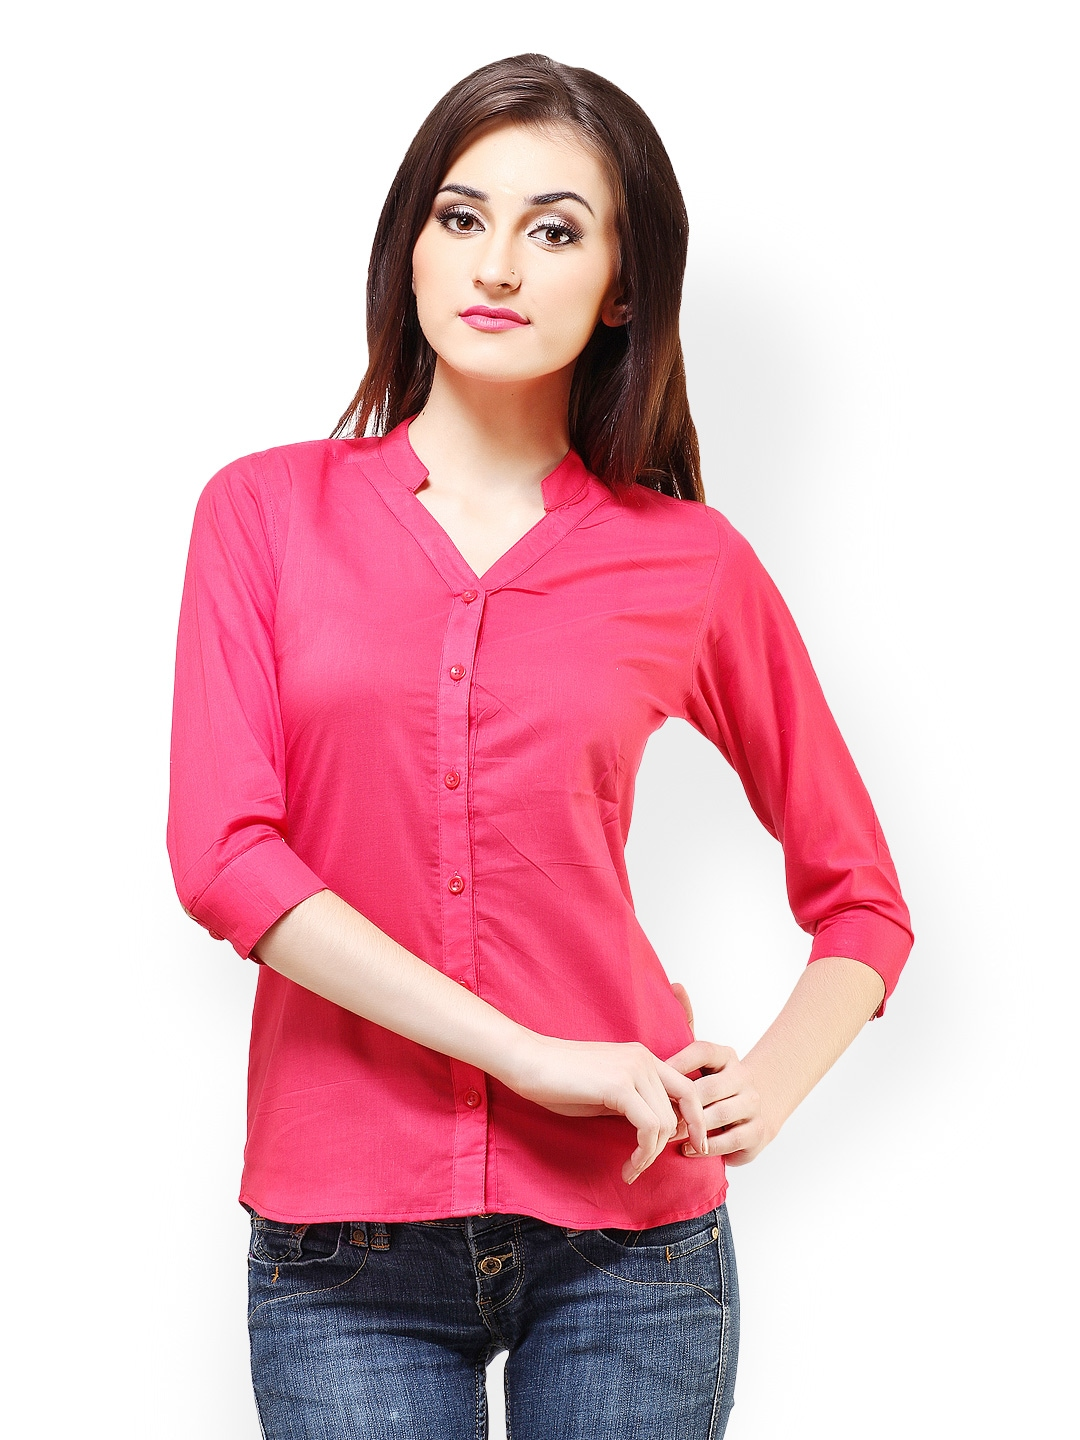 Myntra cation women pink shirt 423155 buy myntra cation for Shirts online shopping lowest price